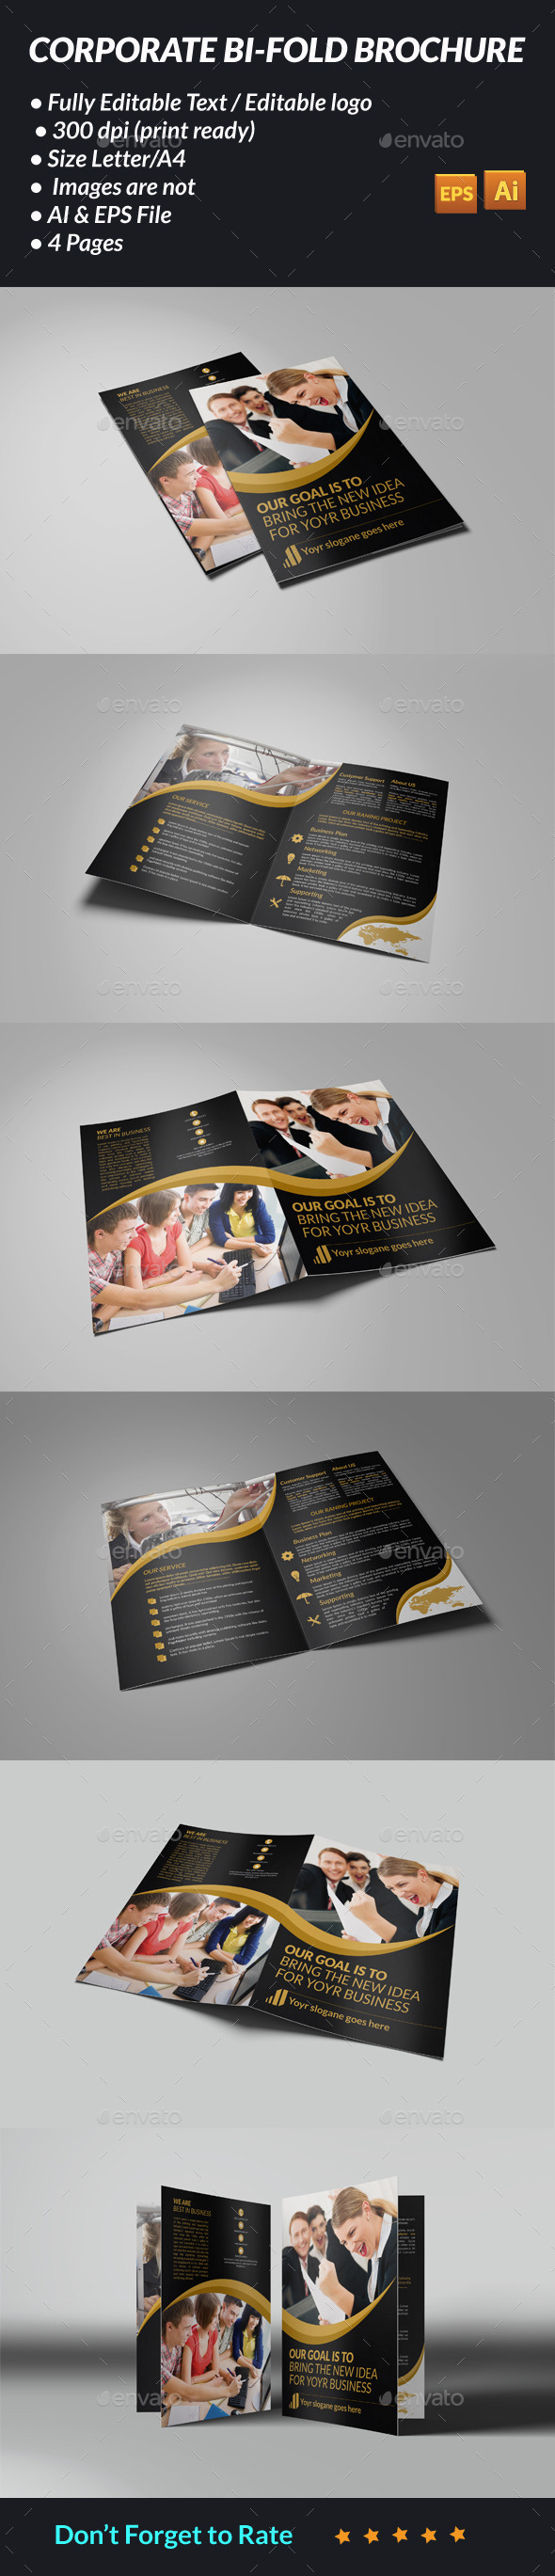 GraphicRiver Corporate Bi-Fold Brochure 11401350